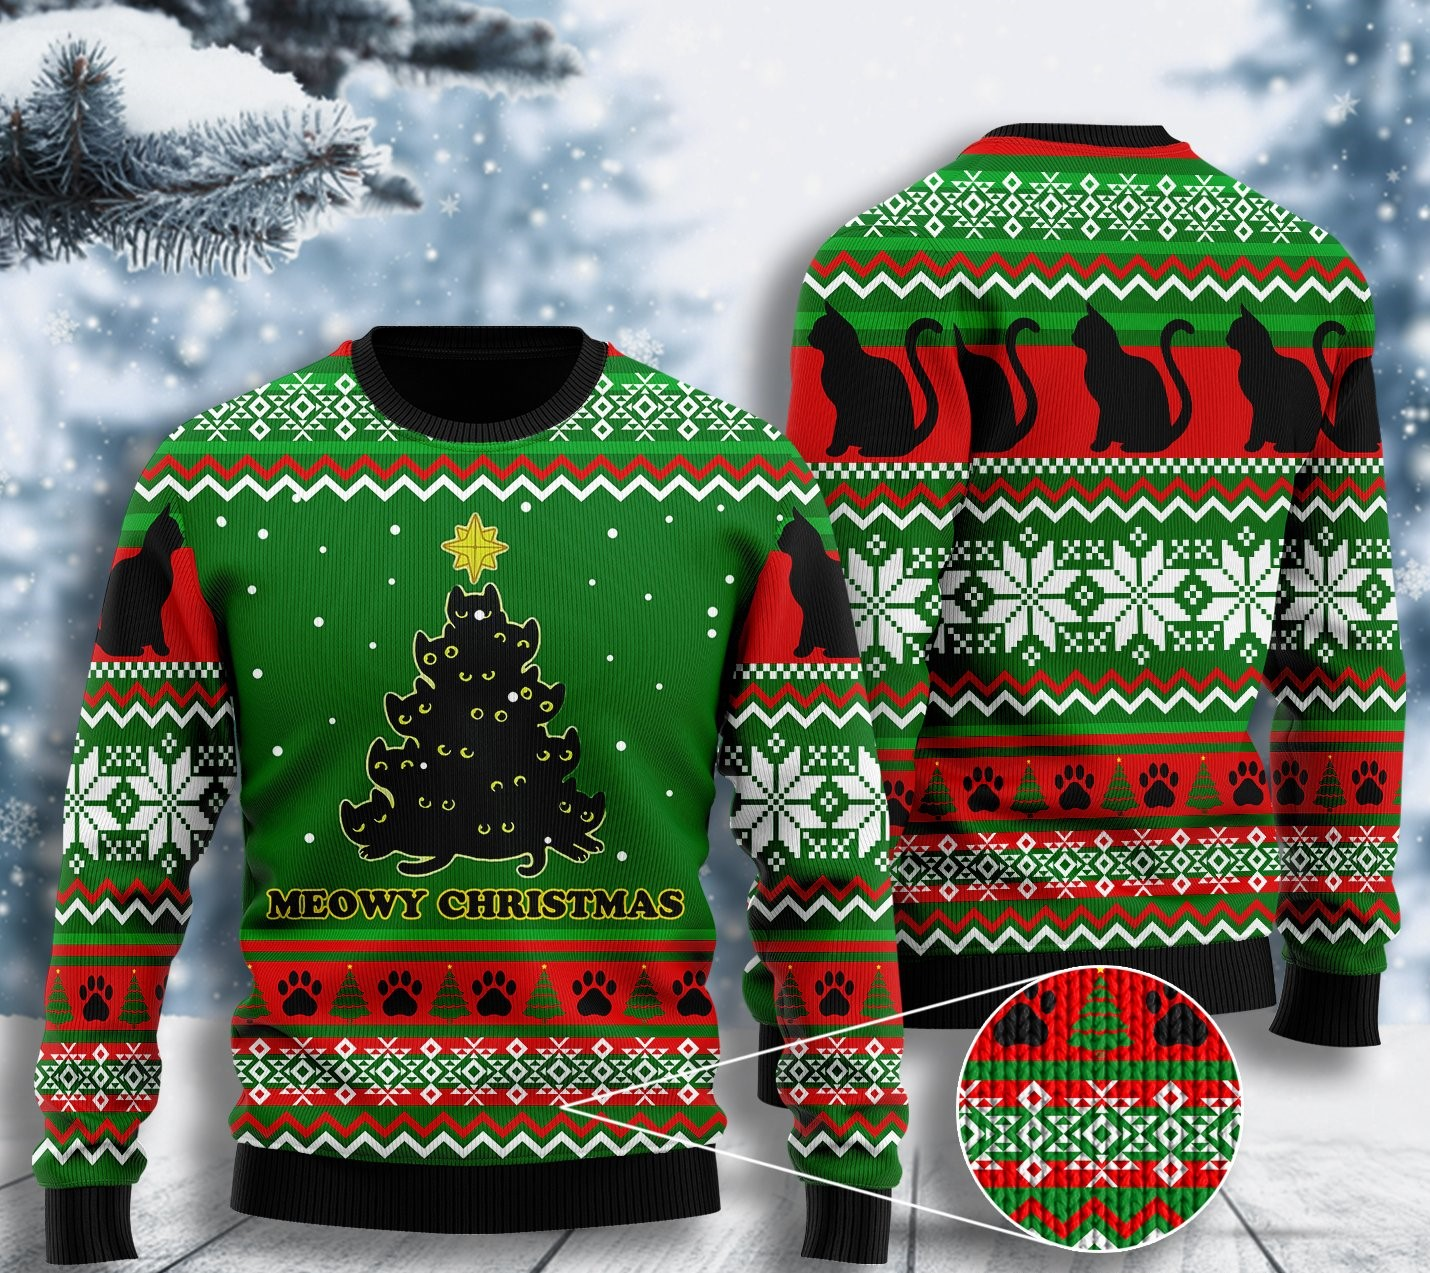 black cat meowy christmas tree all over printed ugly christmas sweater 2 - Copy (2)